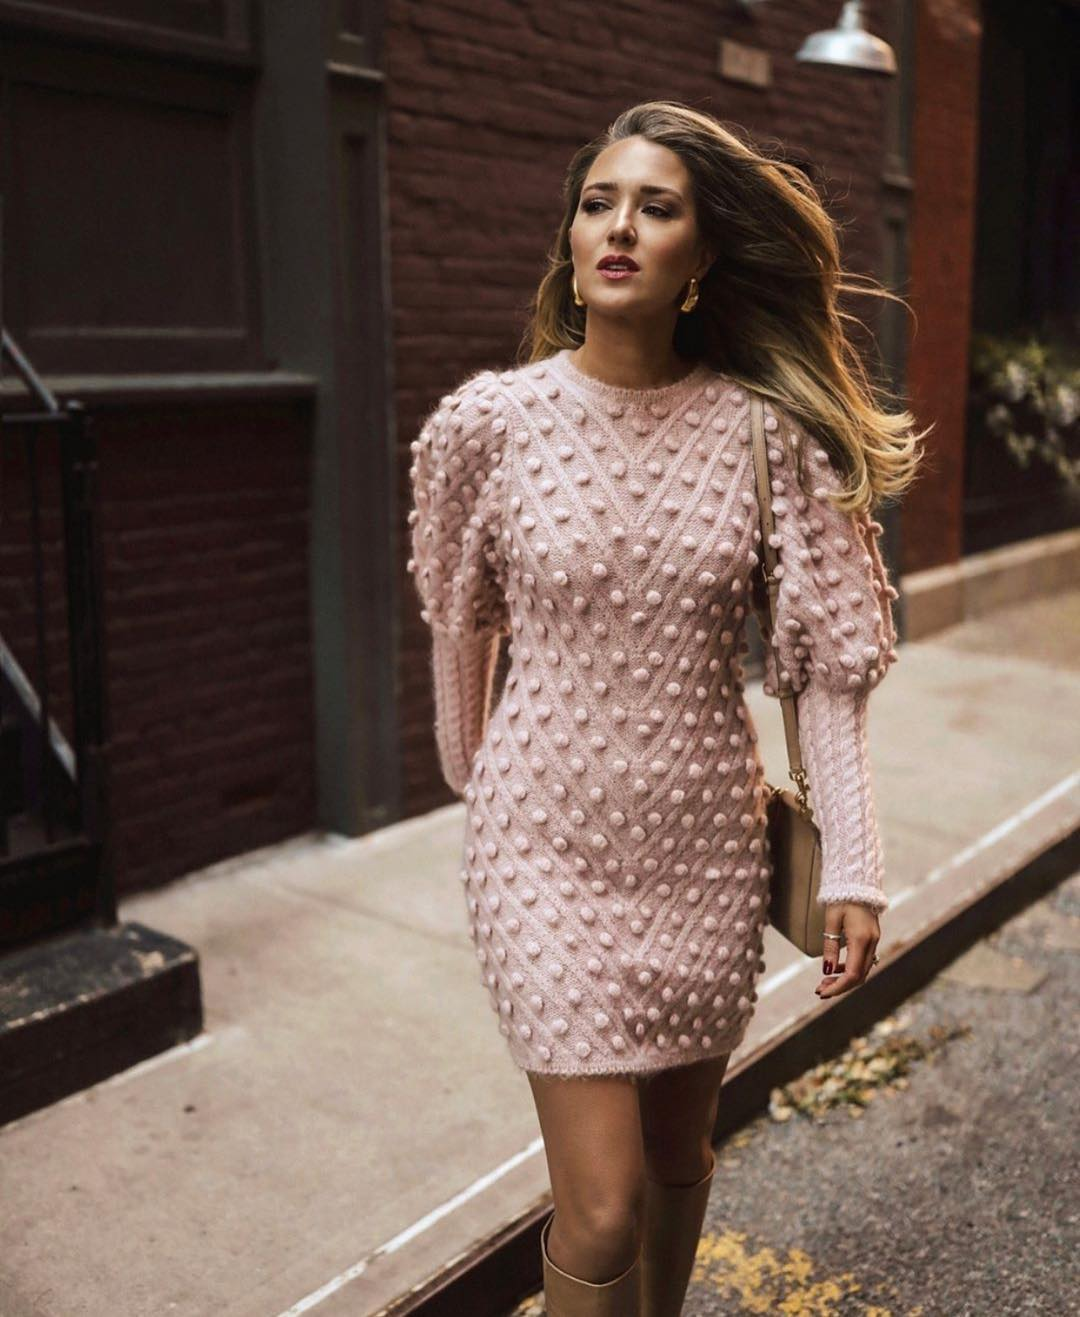 Blush Sweaterdress With Puff Sleeves For Spring In London 2019